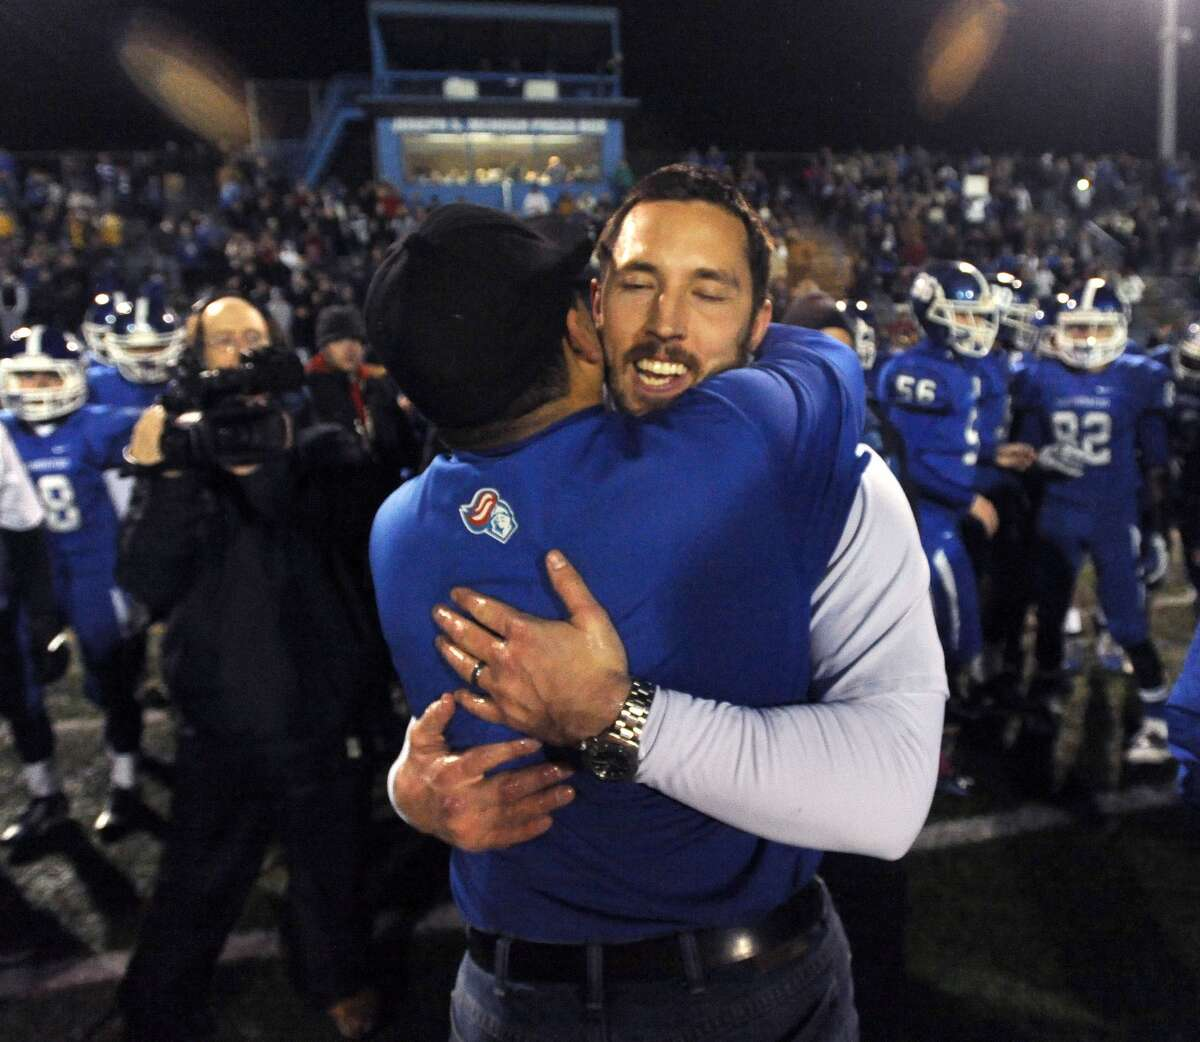 Southington coach Mike Drury gets a congratulatory hug after Southington beat Fairfield Prep, 52-34, to win the 2013 Class S state championship on December 19, 2013.